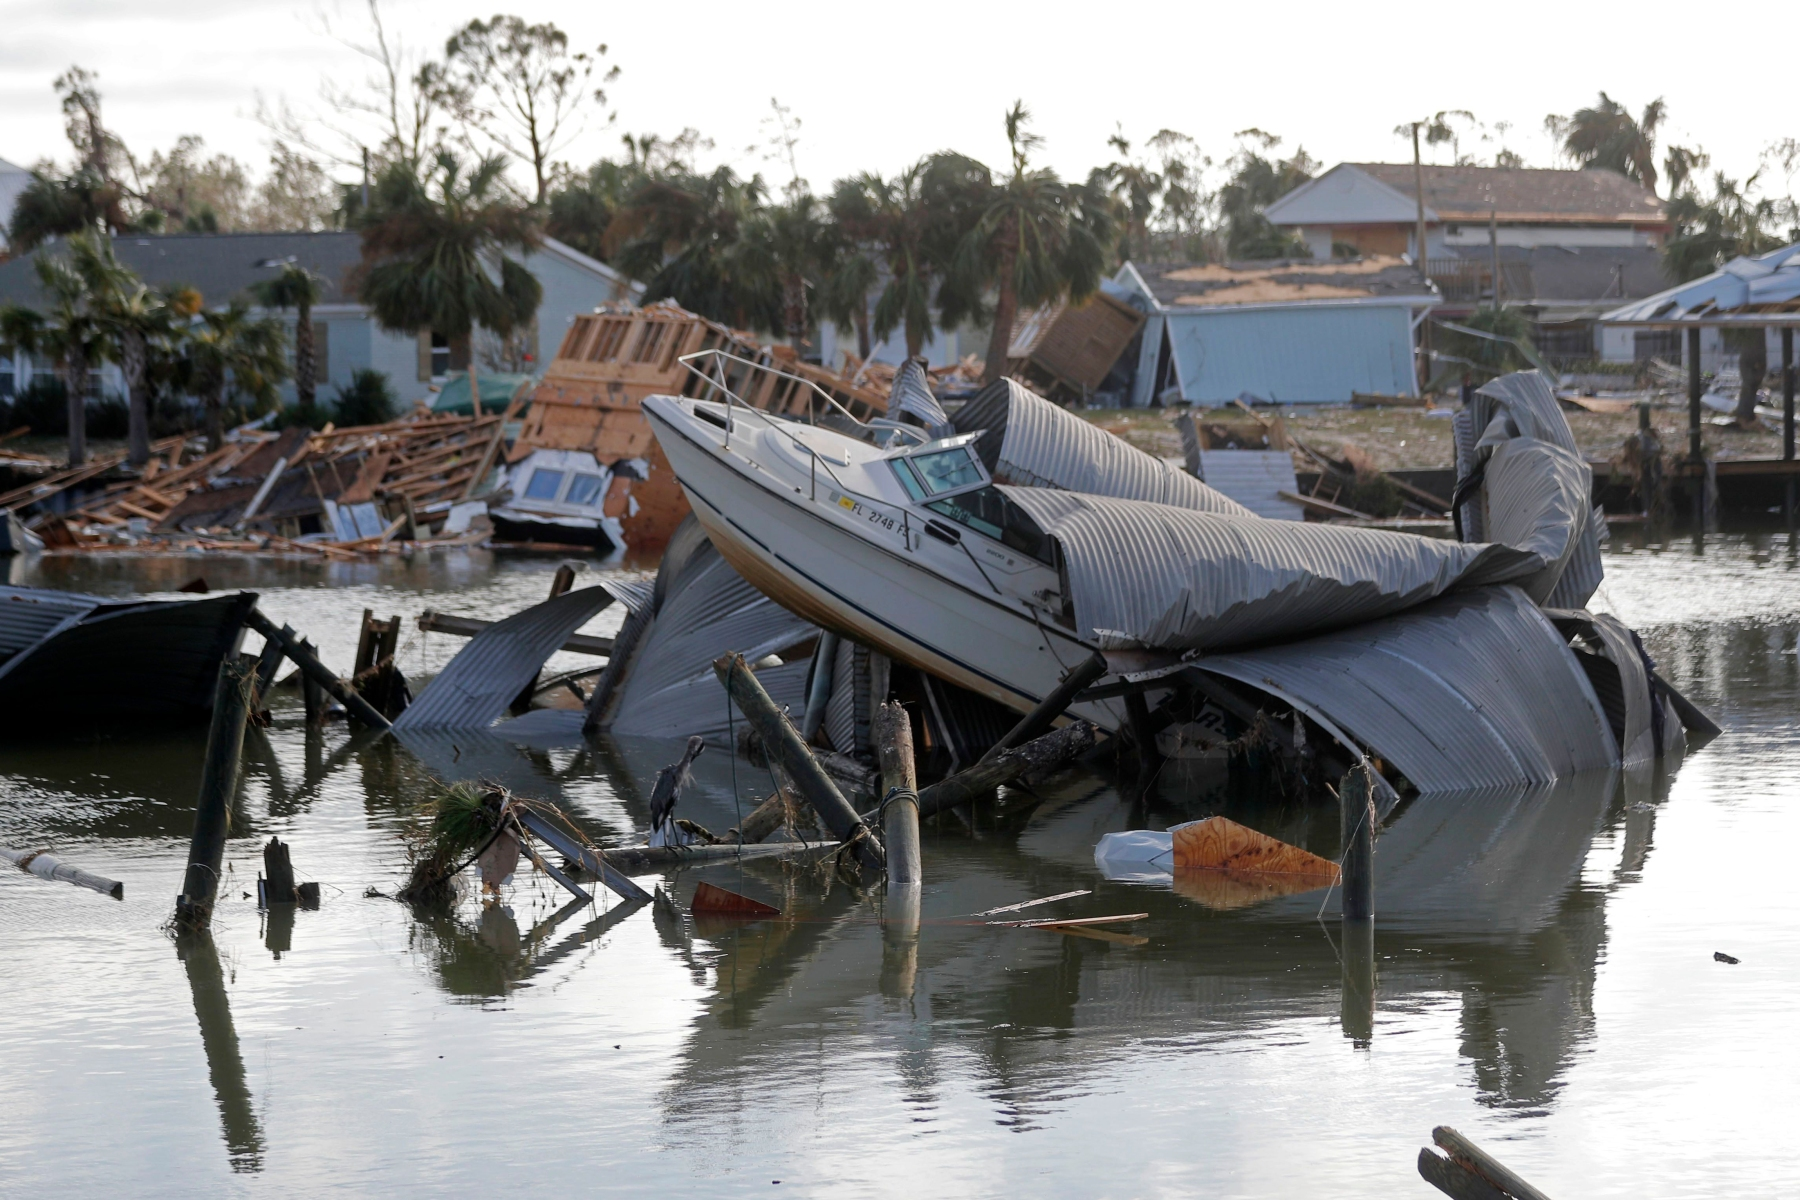 A boat sits amidst debris in the aftermath of Hurricane Michael in Mexico Beach, FlaTropical Weather, Mexico Beach, USA - 11 Oct 2018